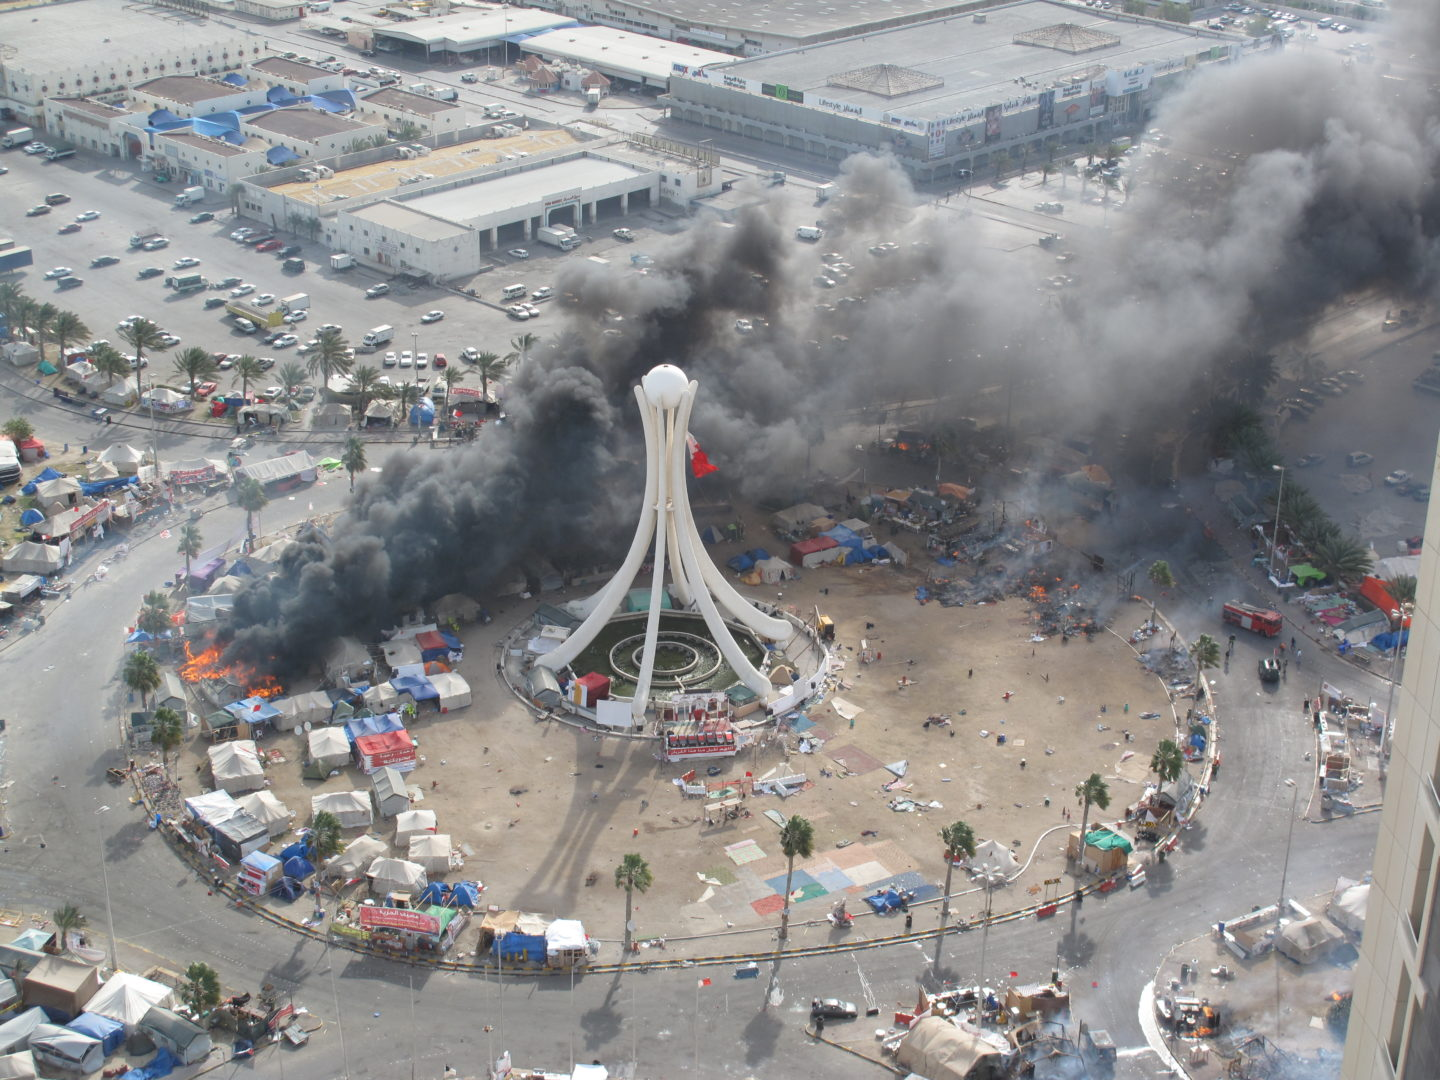 Tents burning as security forces storm Pearl Roundabout, Bahrain